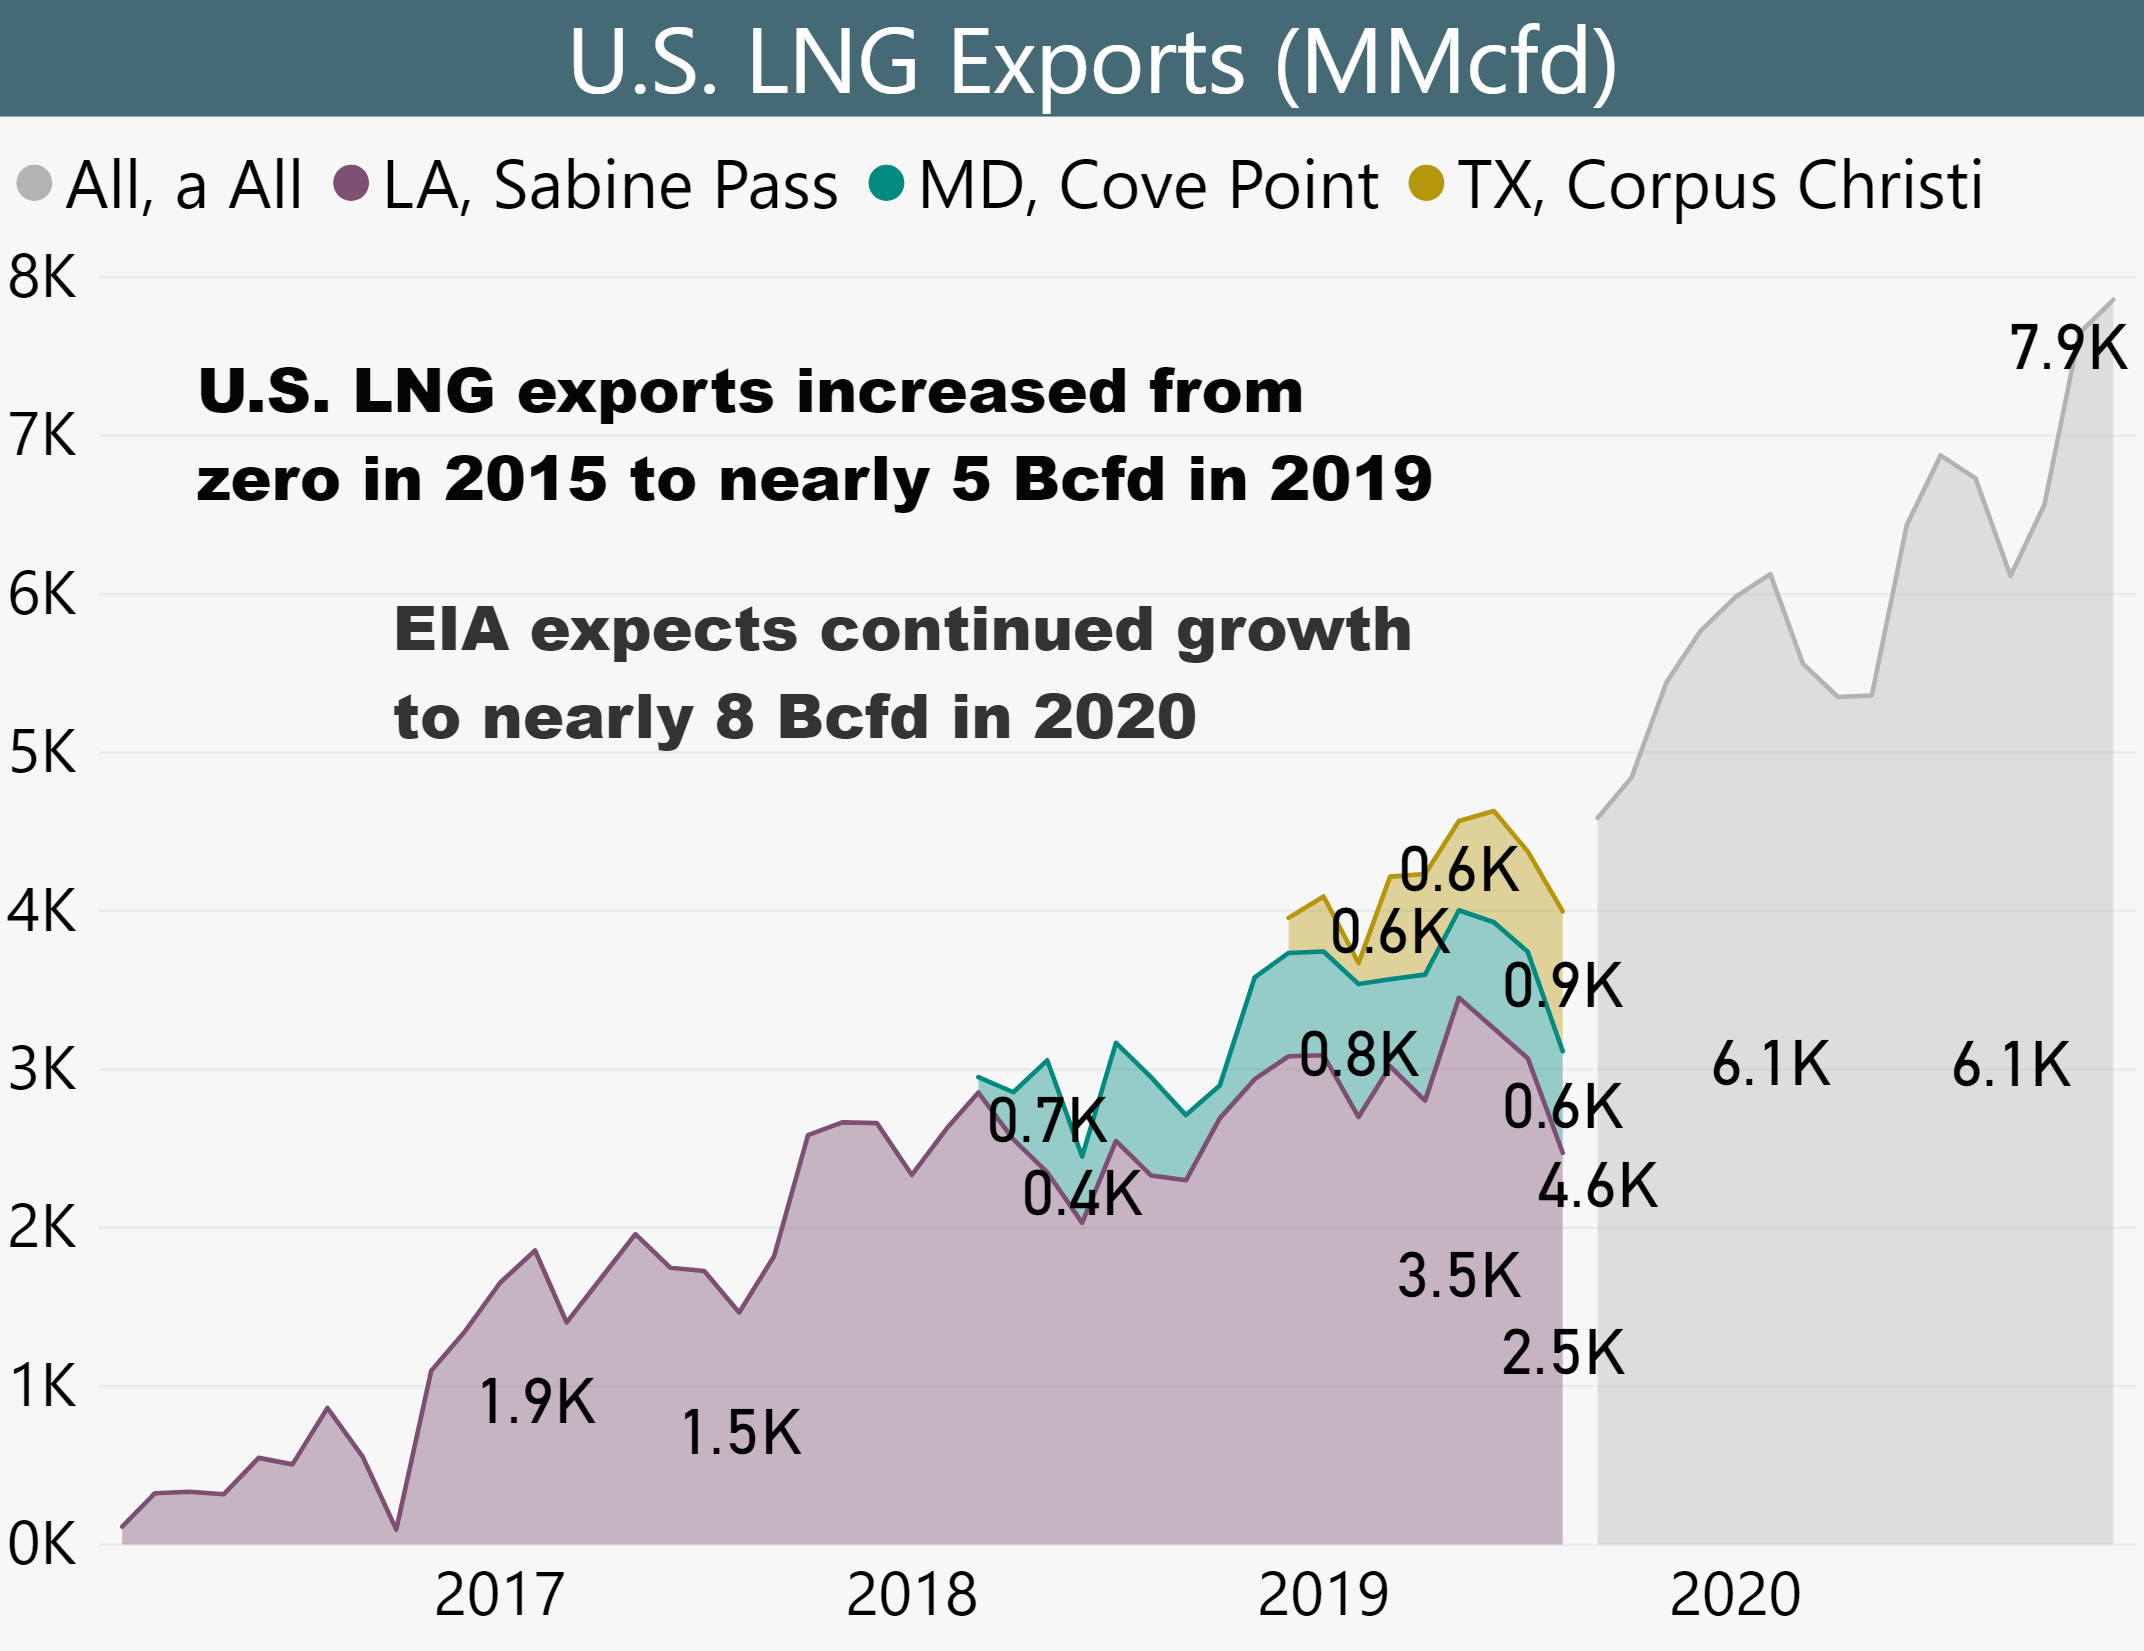 U.S. LNG exports up from zero in 2015 to nearly 8 Bcfd in 2020